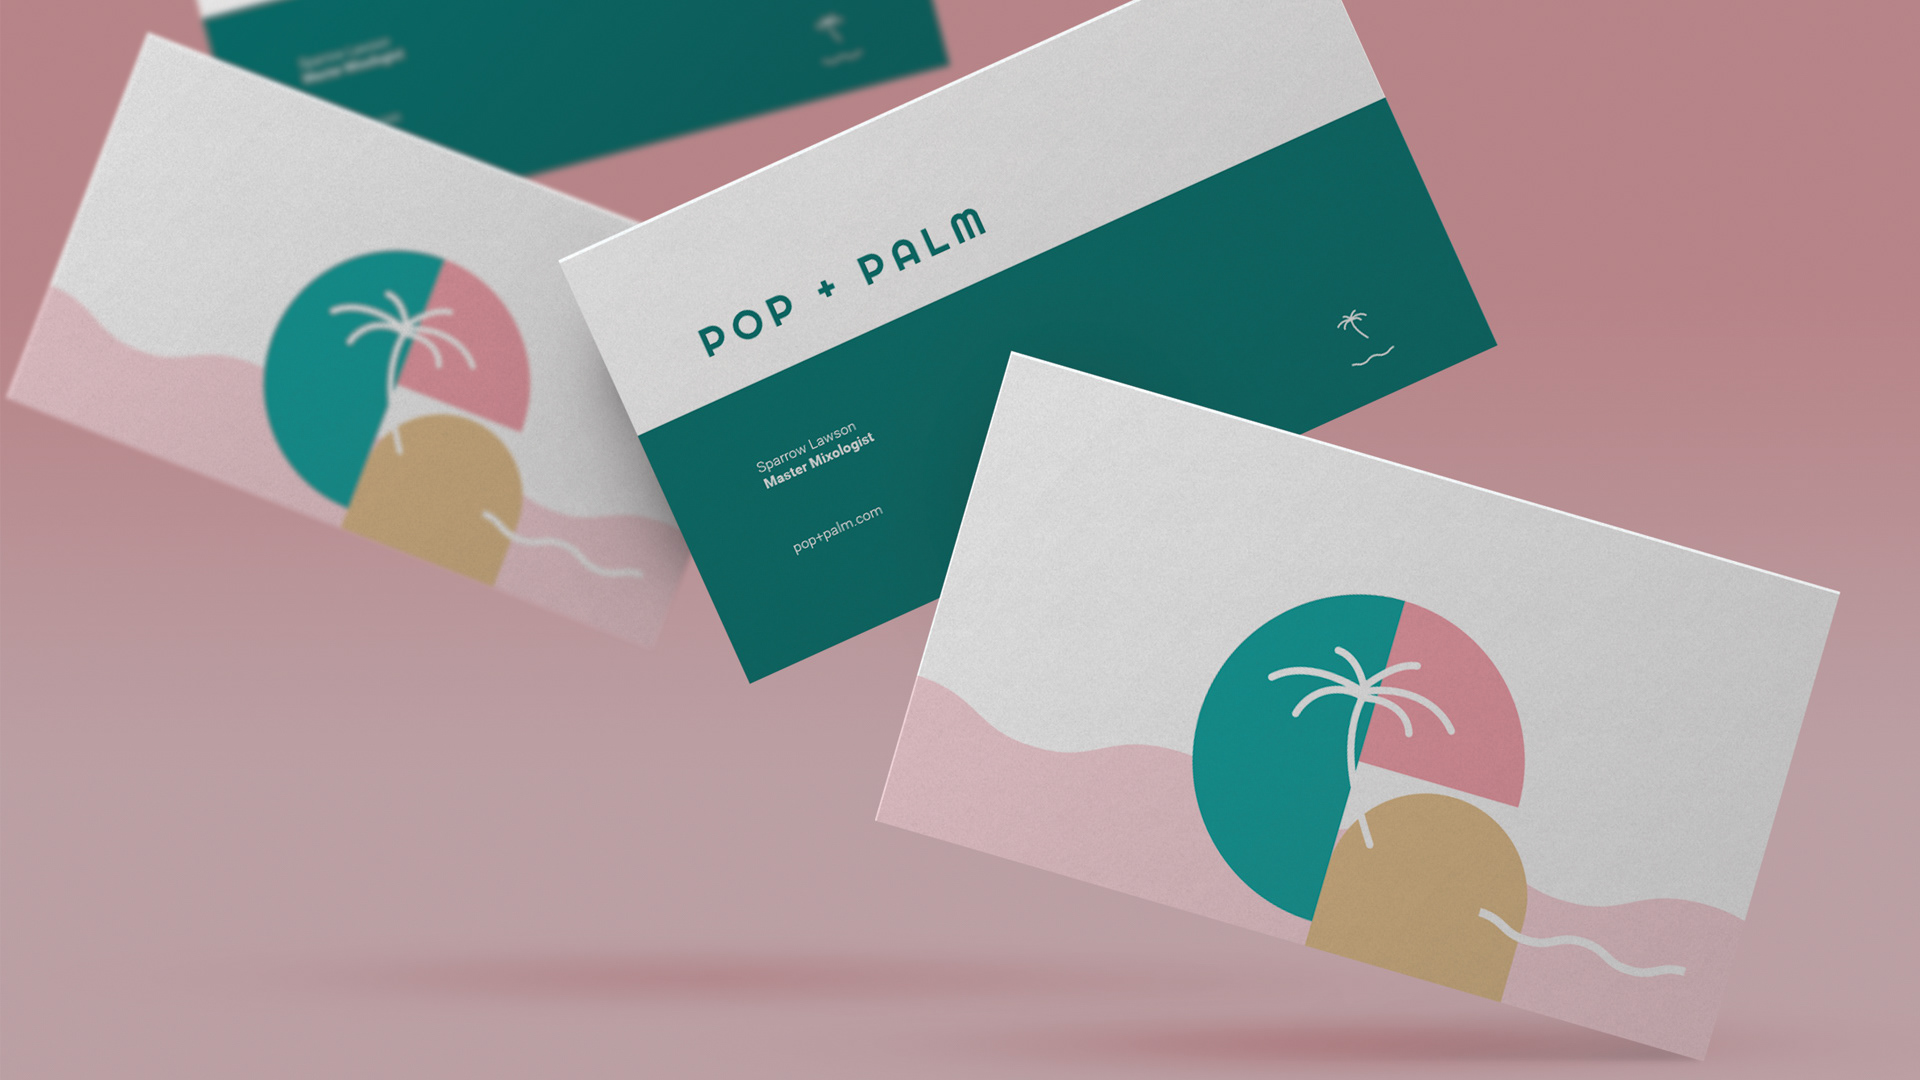 Pop and Palm - Cocktail Bar